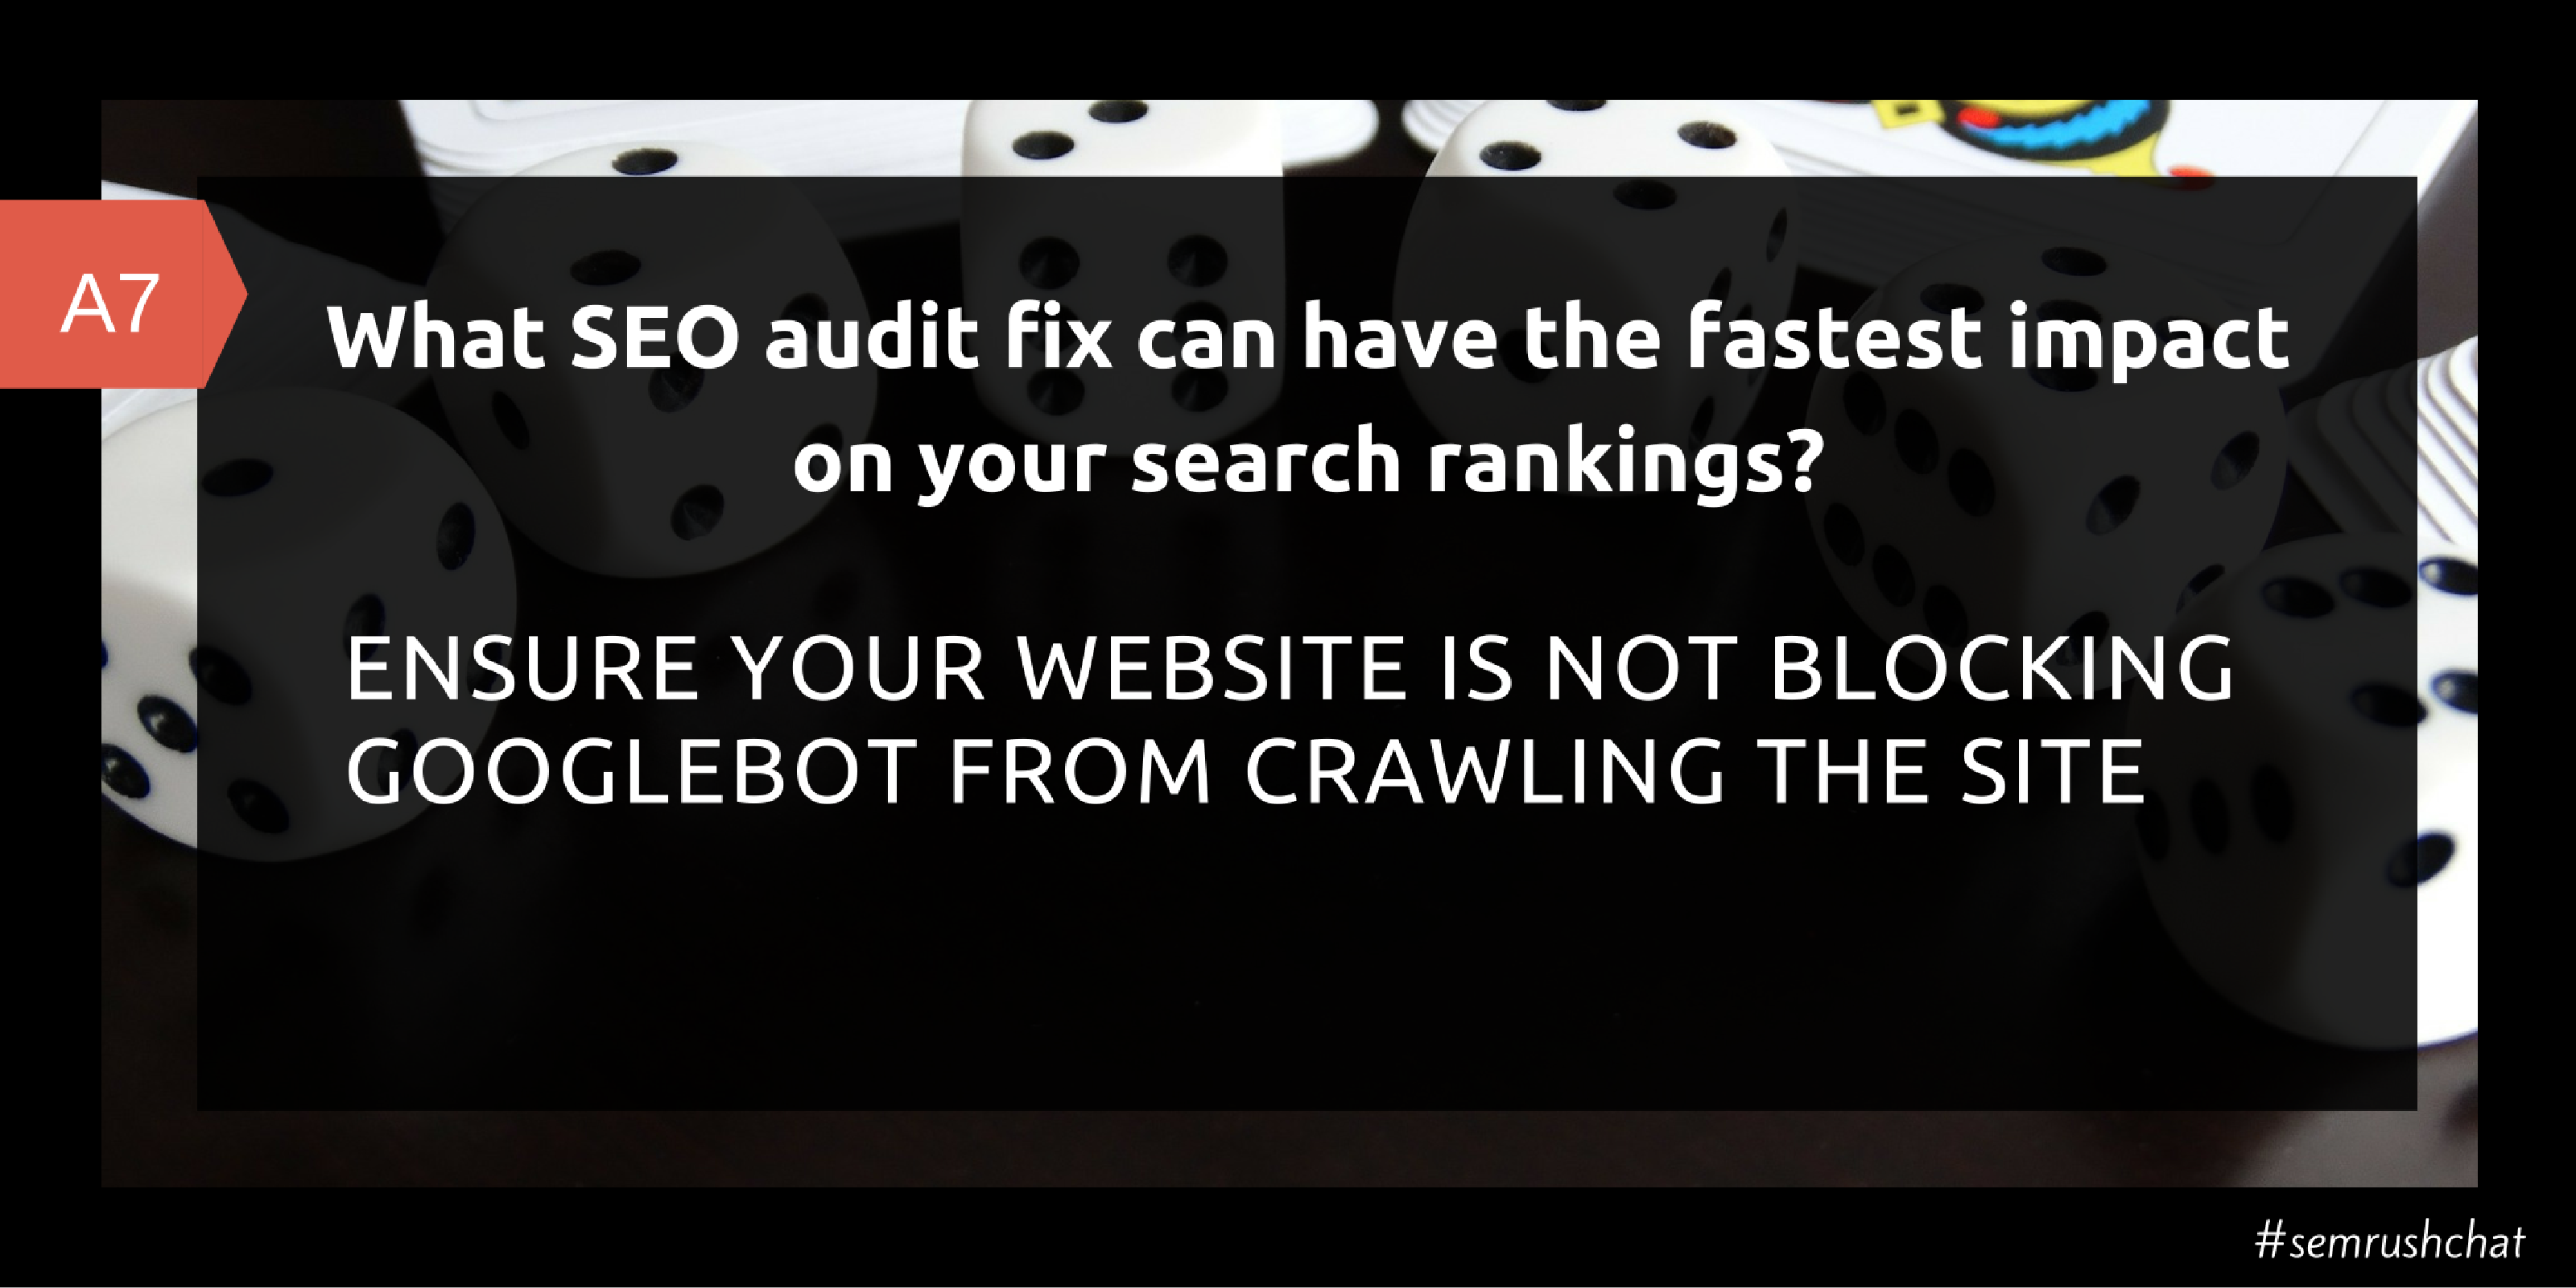 SEO audit fix